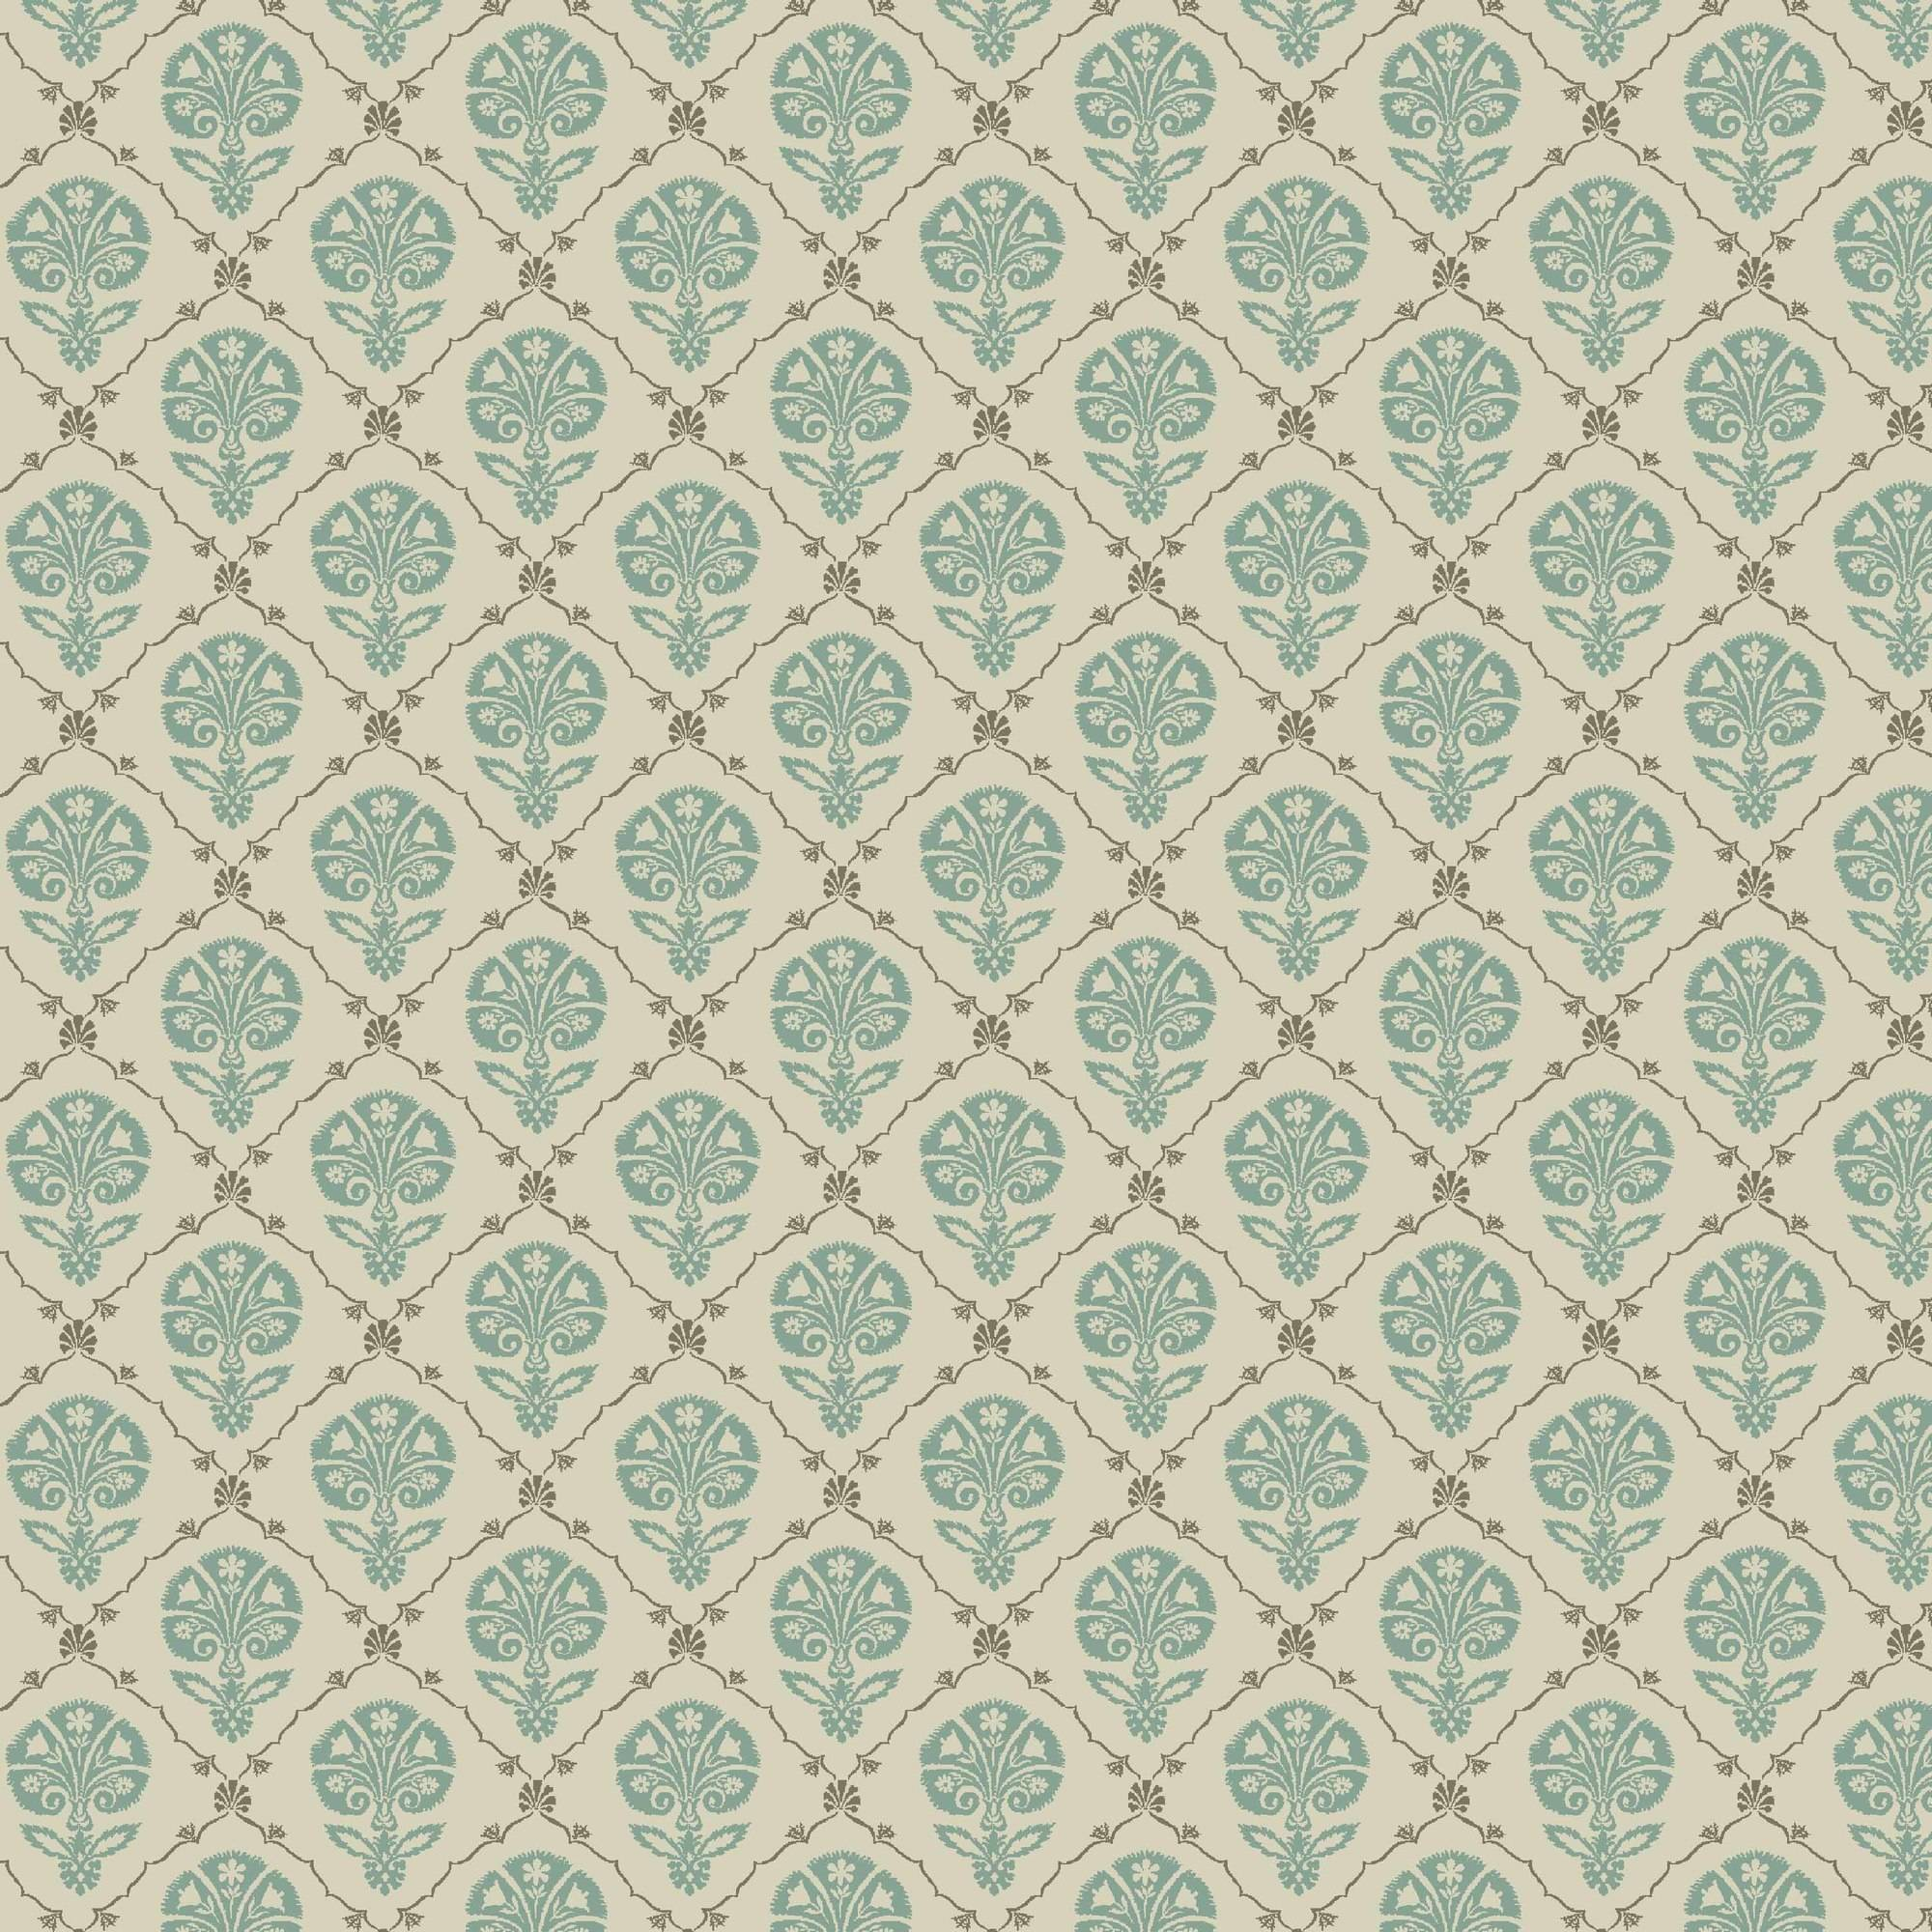 Waverly Inspirations FOULARD SPA 100% Cotton duck fabric, Quilting fabric, Home Decor ,54'', 220GSM